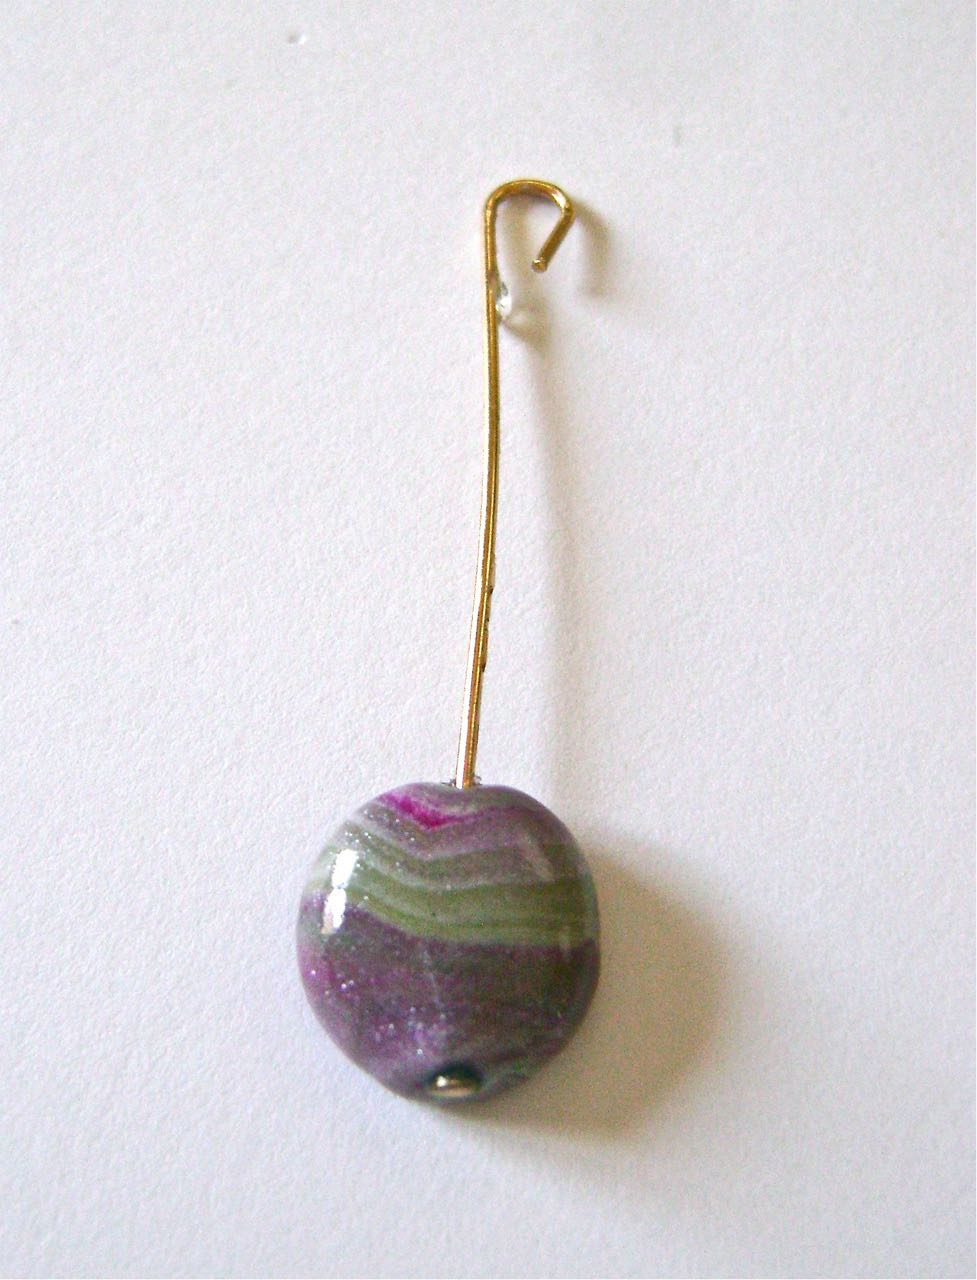 step 11 - Glaze the beads by slipping them onto nail head wires. Curve the top of the wire to create hooks for hanging. Fill a small container with Diamond Glaze and dip each bead into the glaze. Hang on a wire clothes hanger with protective plastic beneath to catch drips.